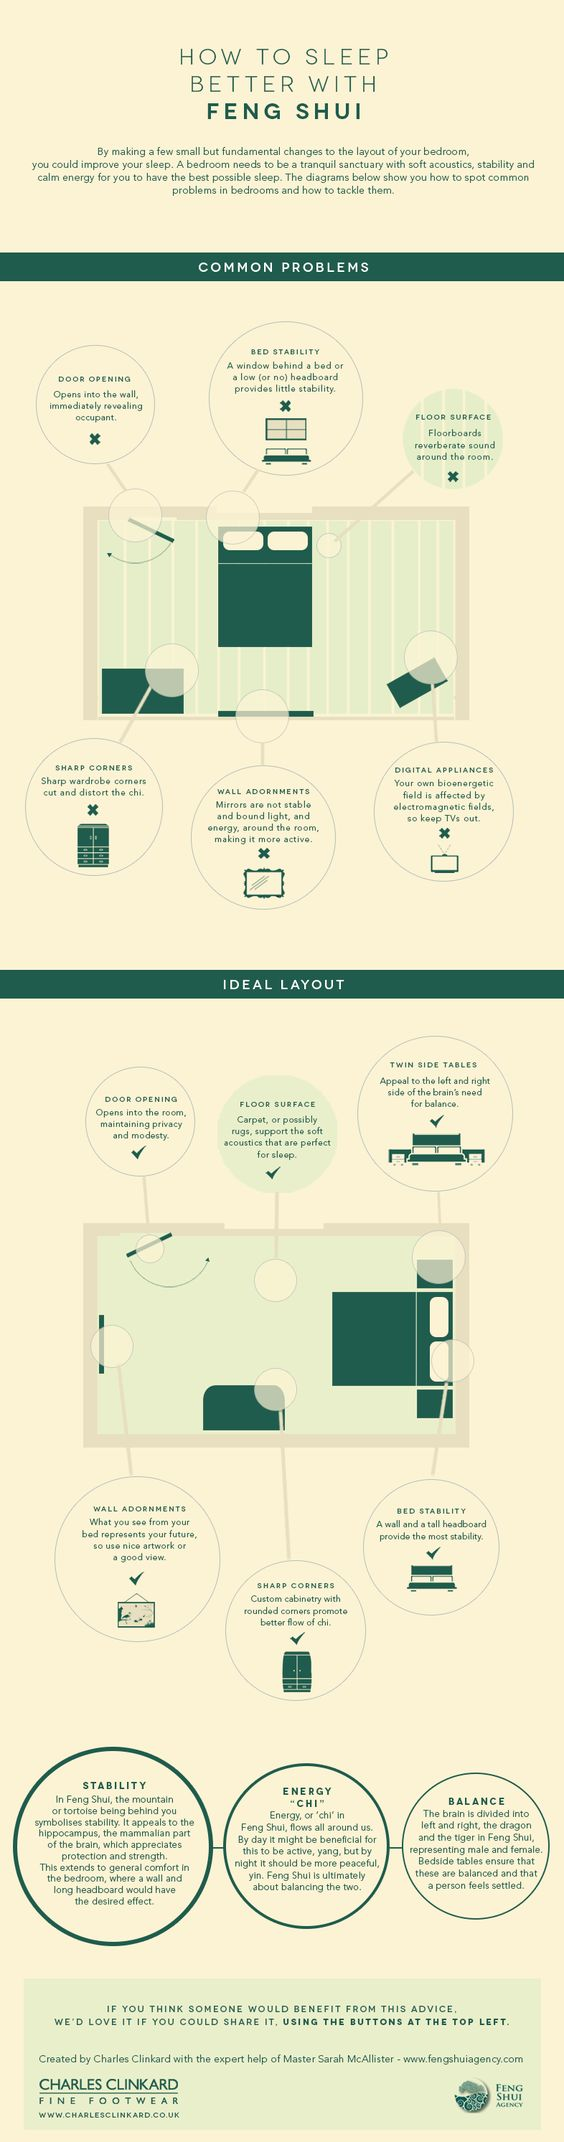 An interesting infographic about how to promote better sleep using feng shui in your bedroom